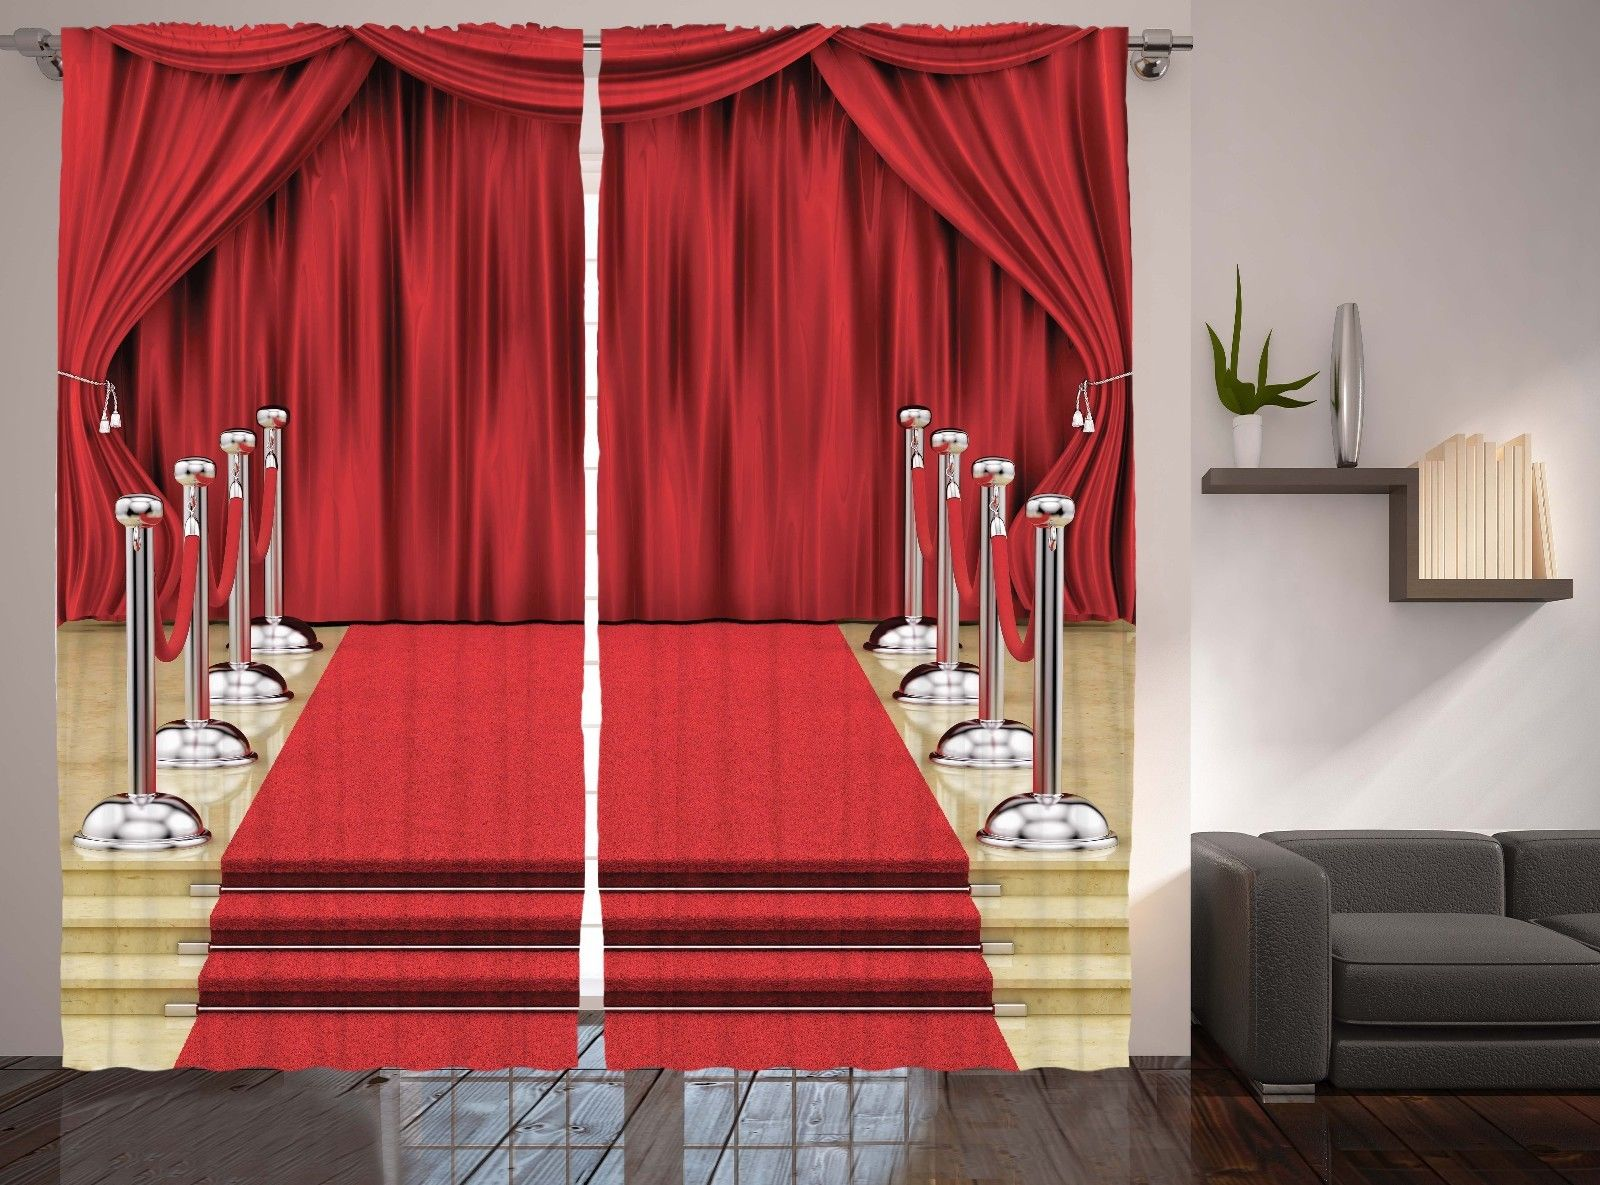 Red carpet image drapes hall theatre stage decor elegant for Auditorium stage decoration